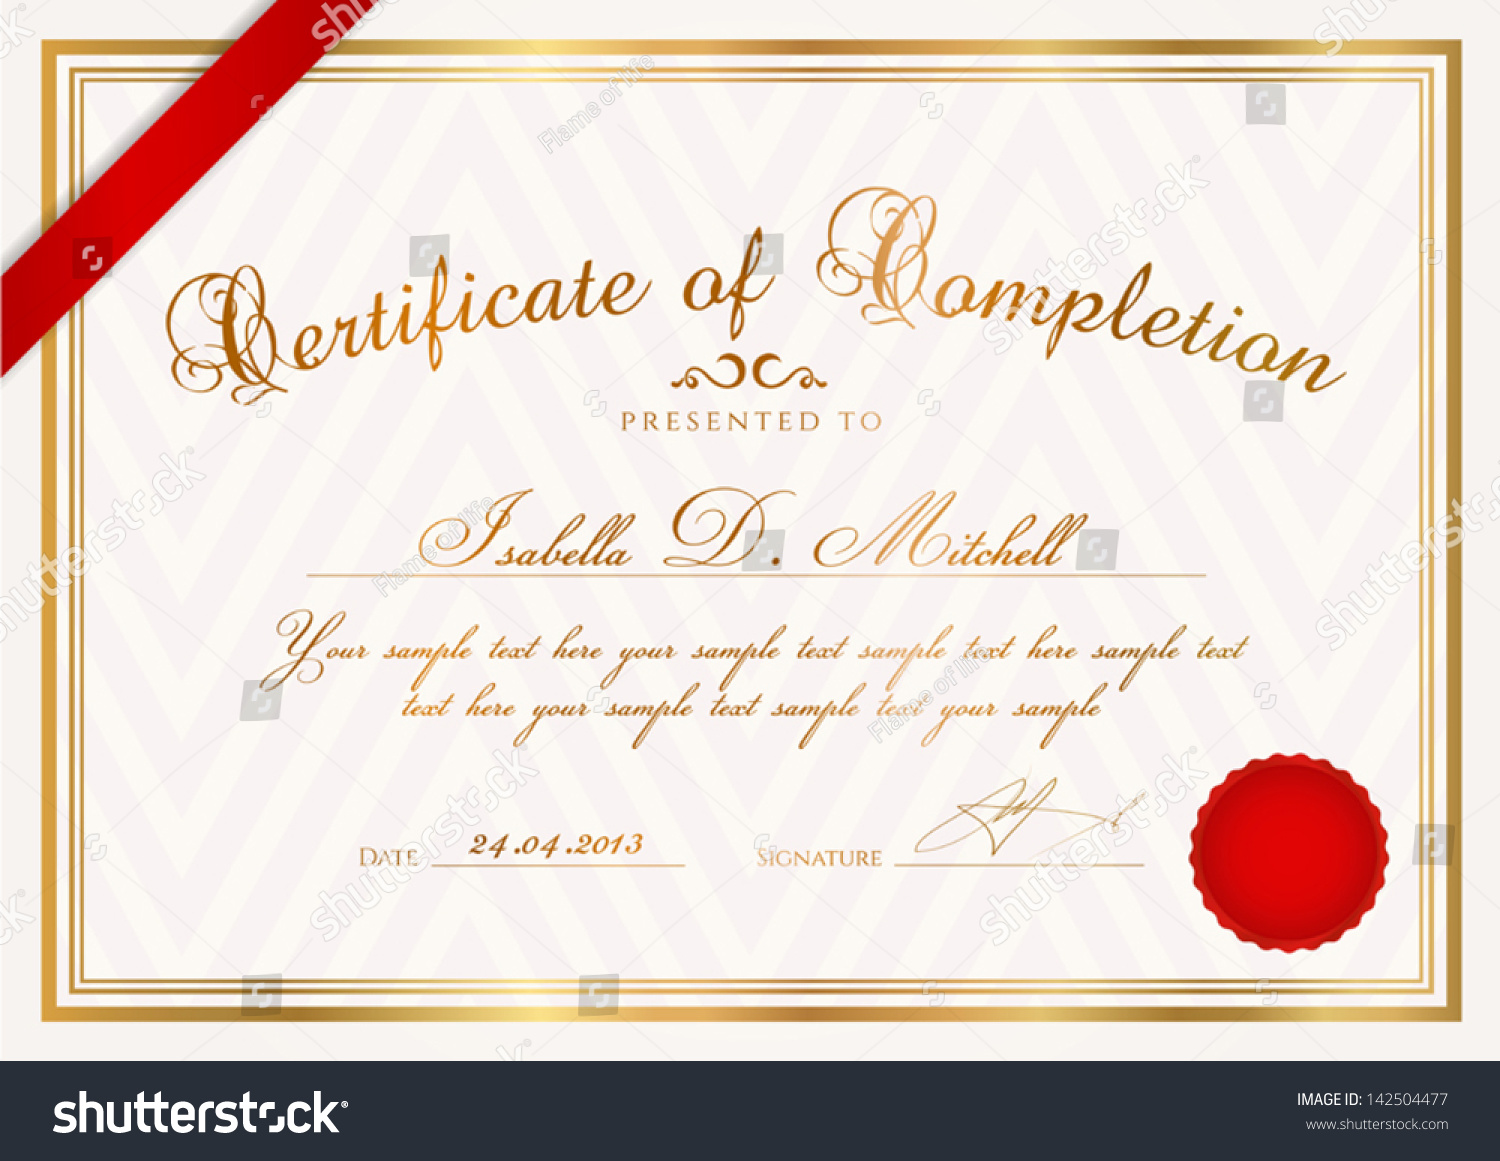 Certificate diploma of completion design template sample certificate diploma of completion design template sample background with abstract pattern gold border ribbon wax seal useful for certificate of yelopaper Images